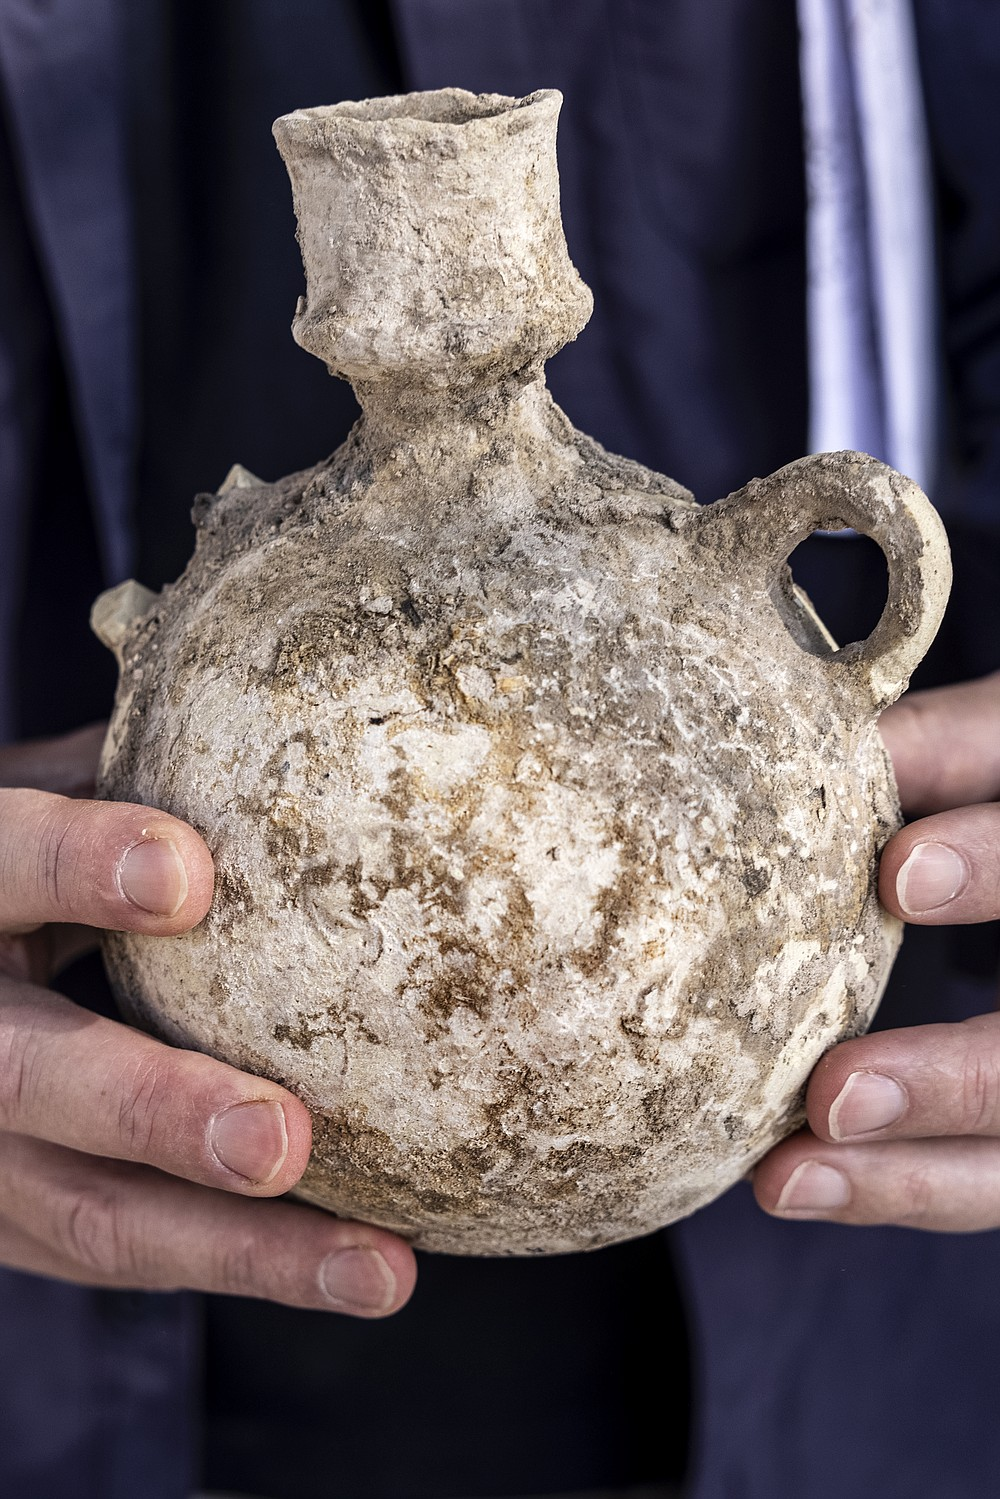 An Israel Antiquities Authority employe holds a jar from a massive ancient winemaking complex dating back some 1,500 years in Yavne, central, Israel, Monday, Oct. 11, 2021. Israeli archaeologists said the complex includes five wine presses, warehouses, kilns for producing clay storage vessels and tens of thousands of fragments and jars. (AP Photo/Tsafrir Abayov)